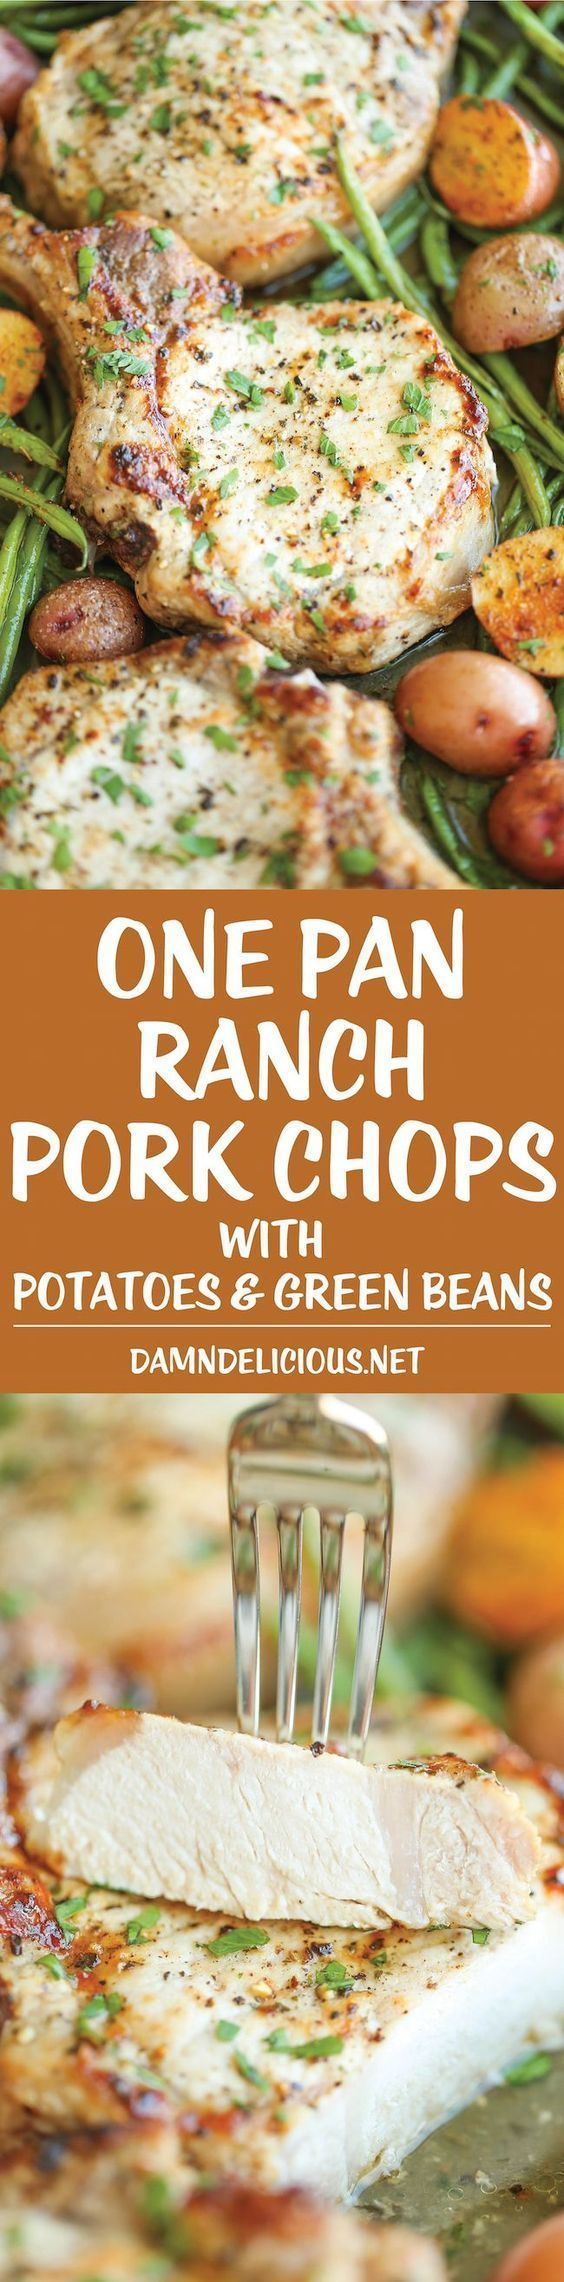 The easiest 5-ingredient meal EVER! And yes, you just need one pan with 5 min prep. It's quick, easy and effortless!